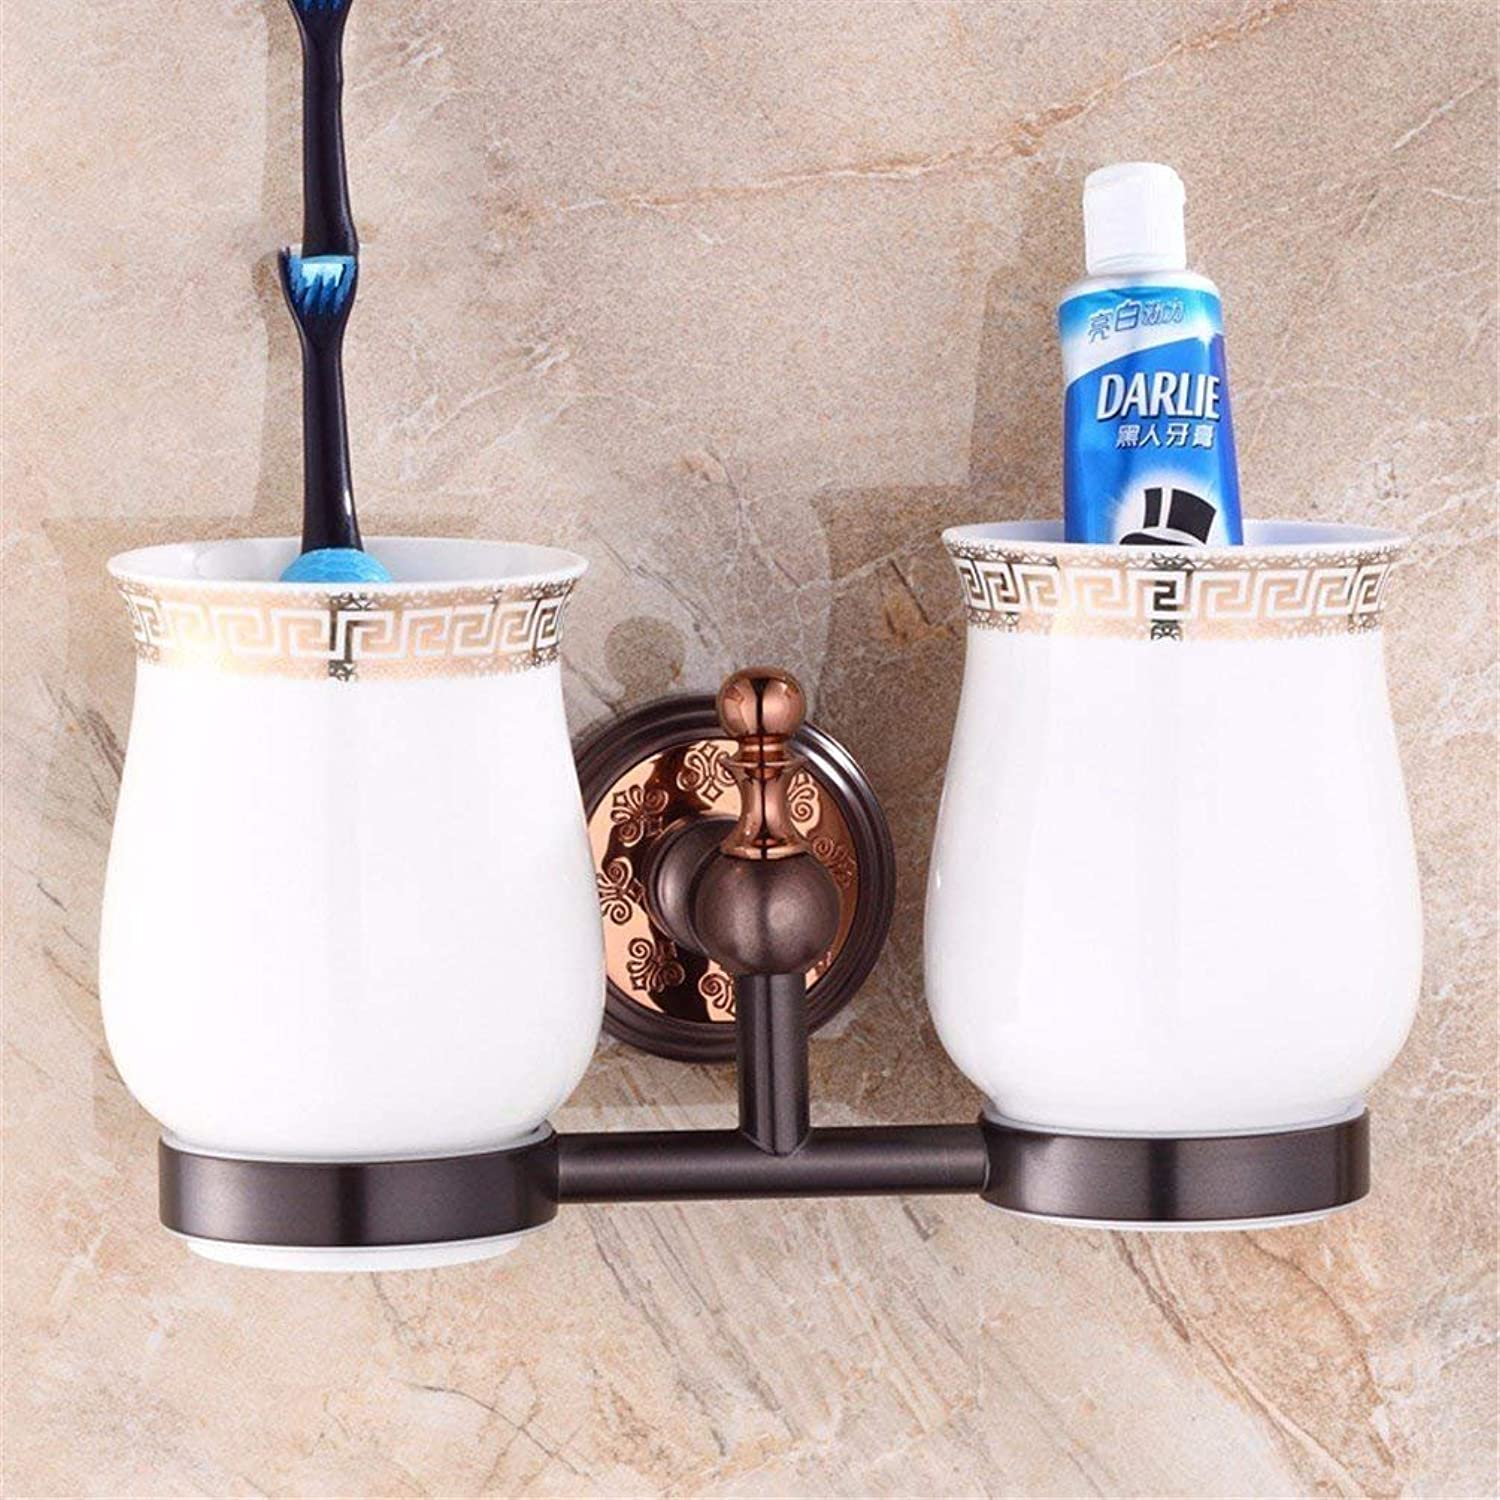 Continental Orb Cu + Accessory Kit in Pink gold of All Toilet Bathroom Toilet Paper Rack Brush Holder,Cupa Double